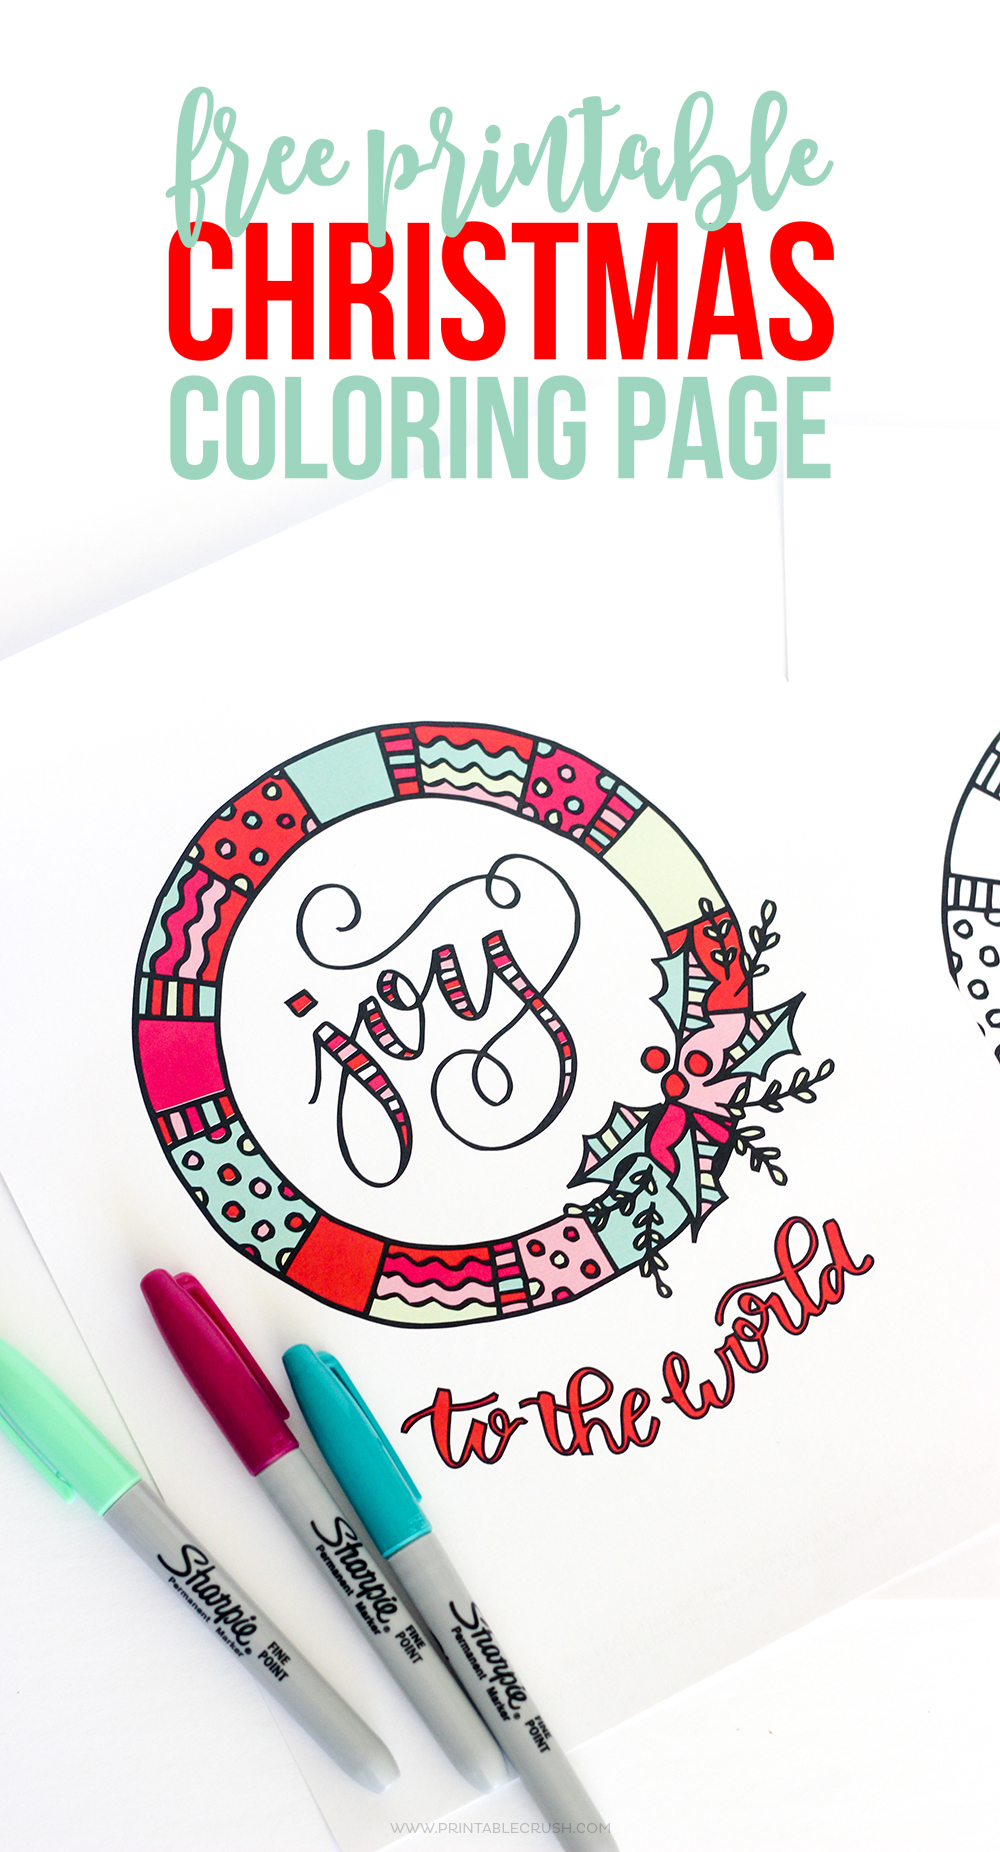 Printable coloring pages christmas - Print Off Some Of These Free Printable Christmas Coloring Page For A Fun Activity For Kids